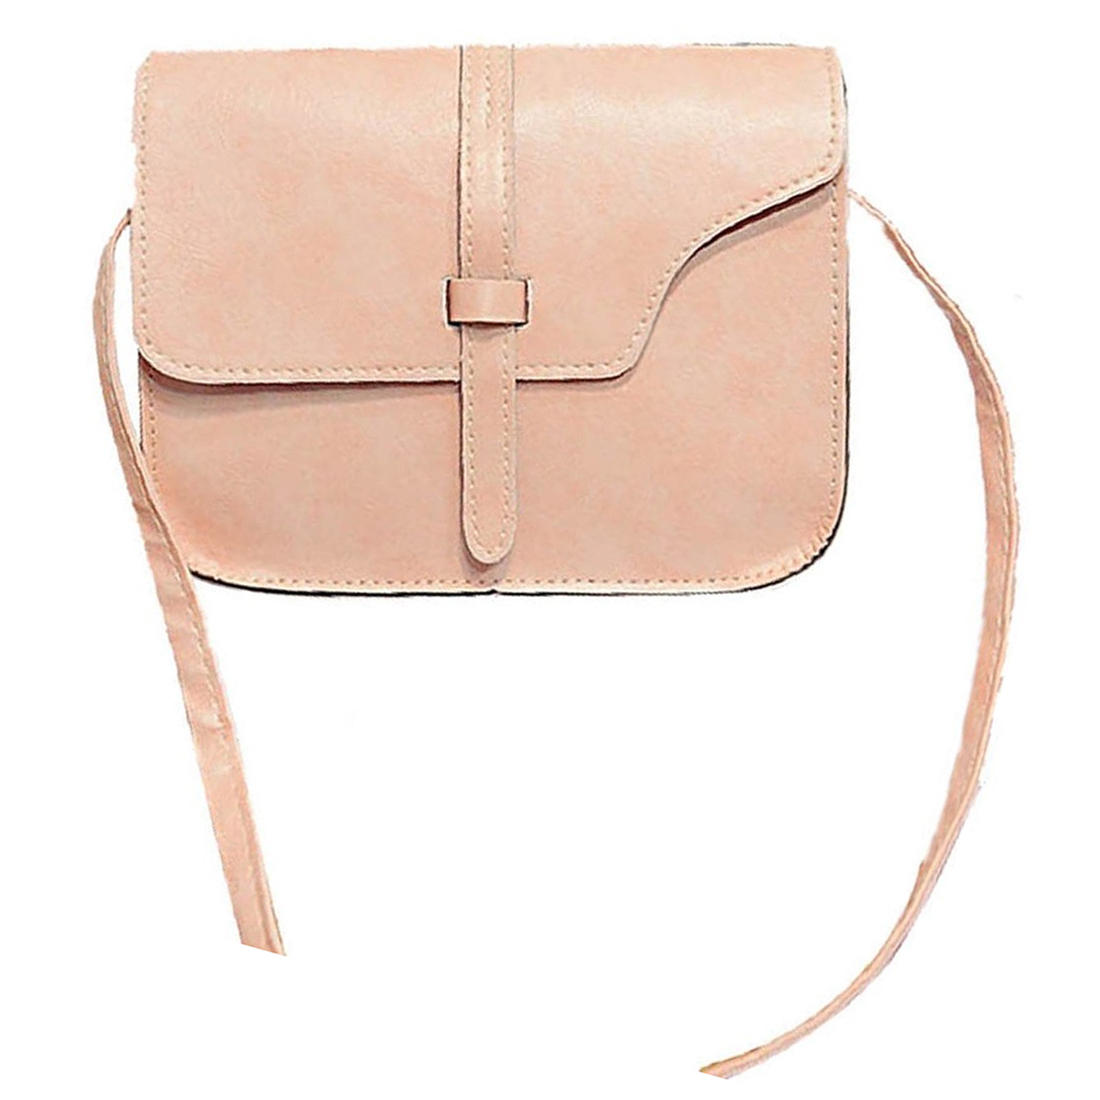 5 pcs of Women Girl Shoulder Bag Briefcase Faux Leather Crossbody Tote Bag pink